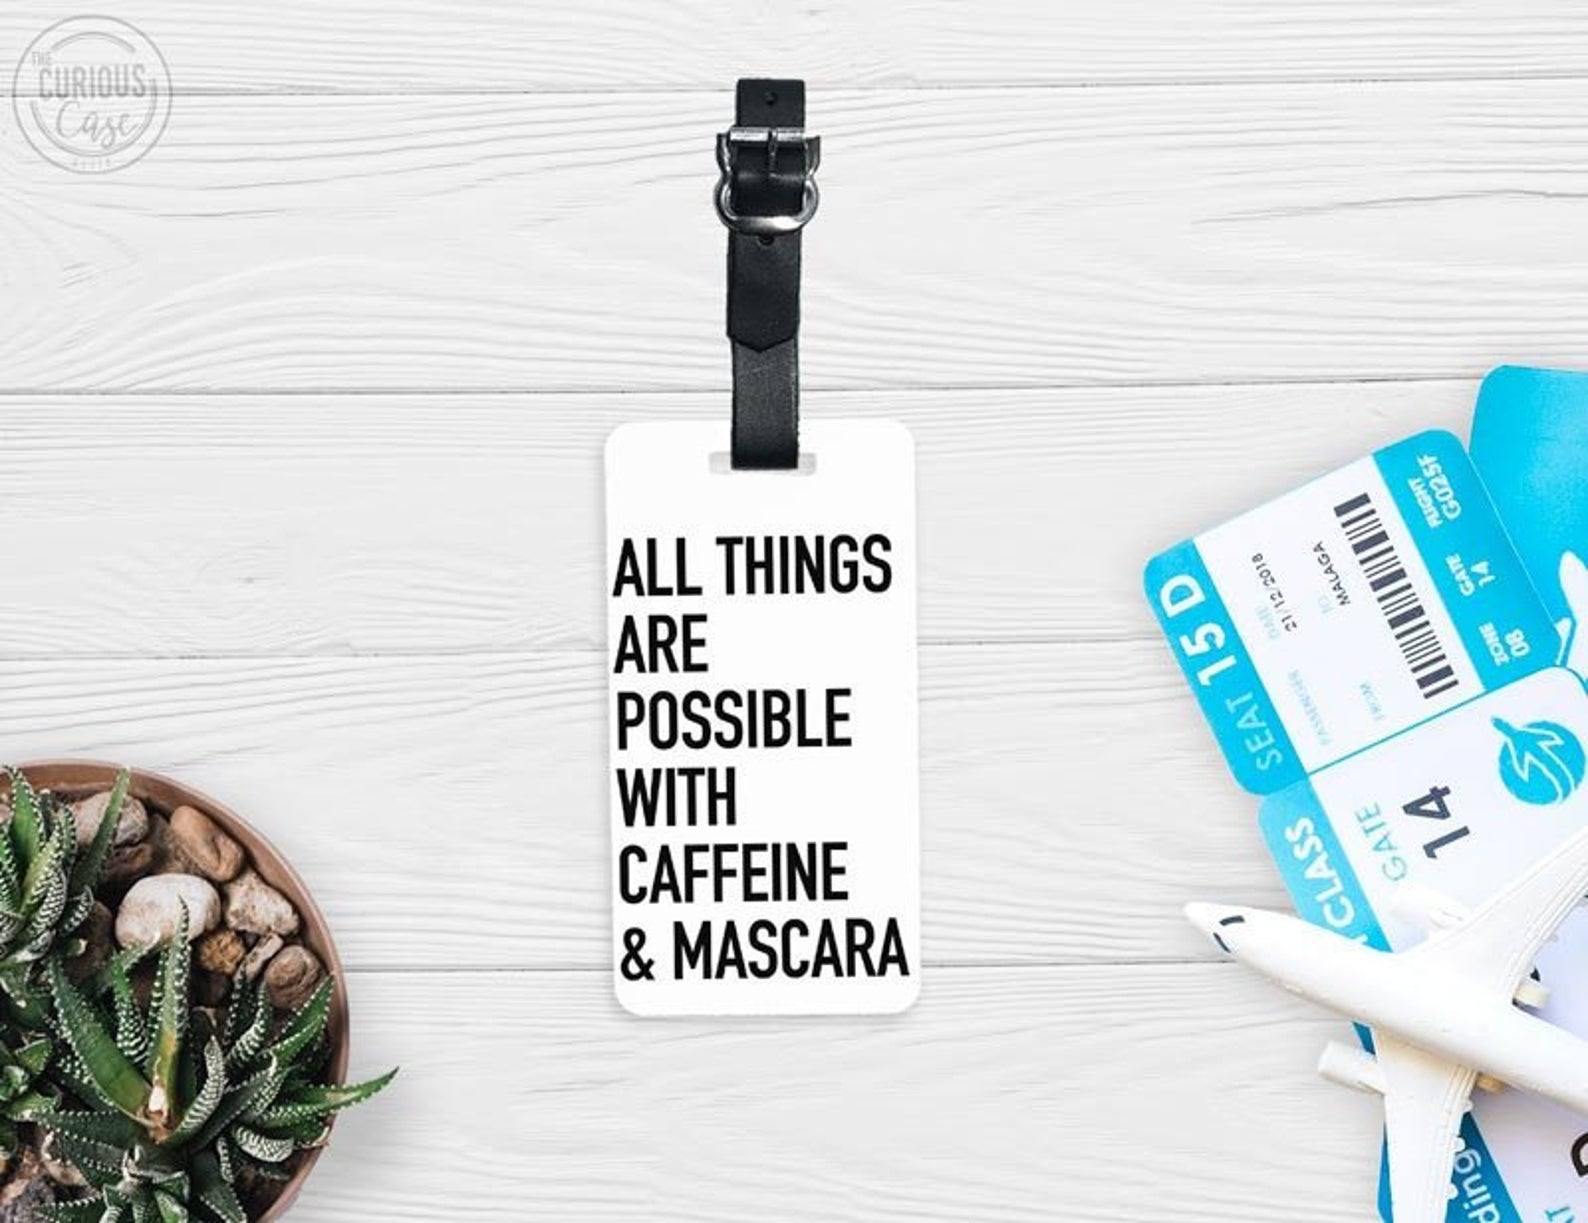 funny luggage tags - all things possible coffee mascara